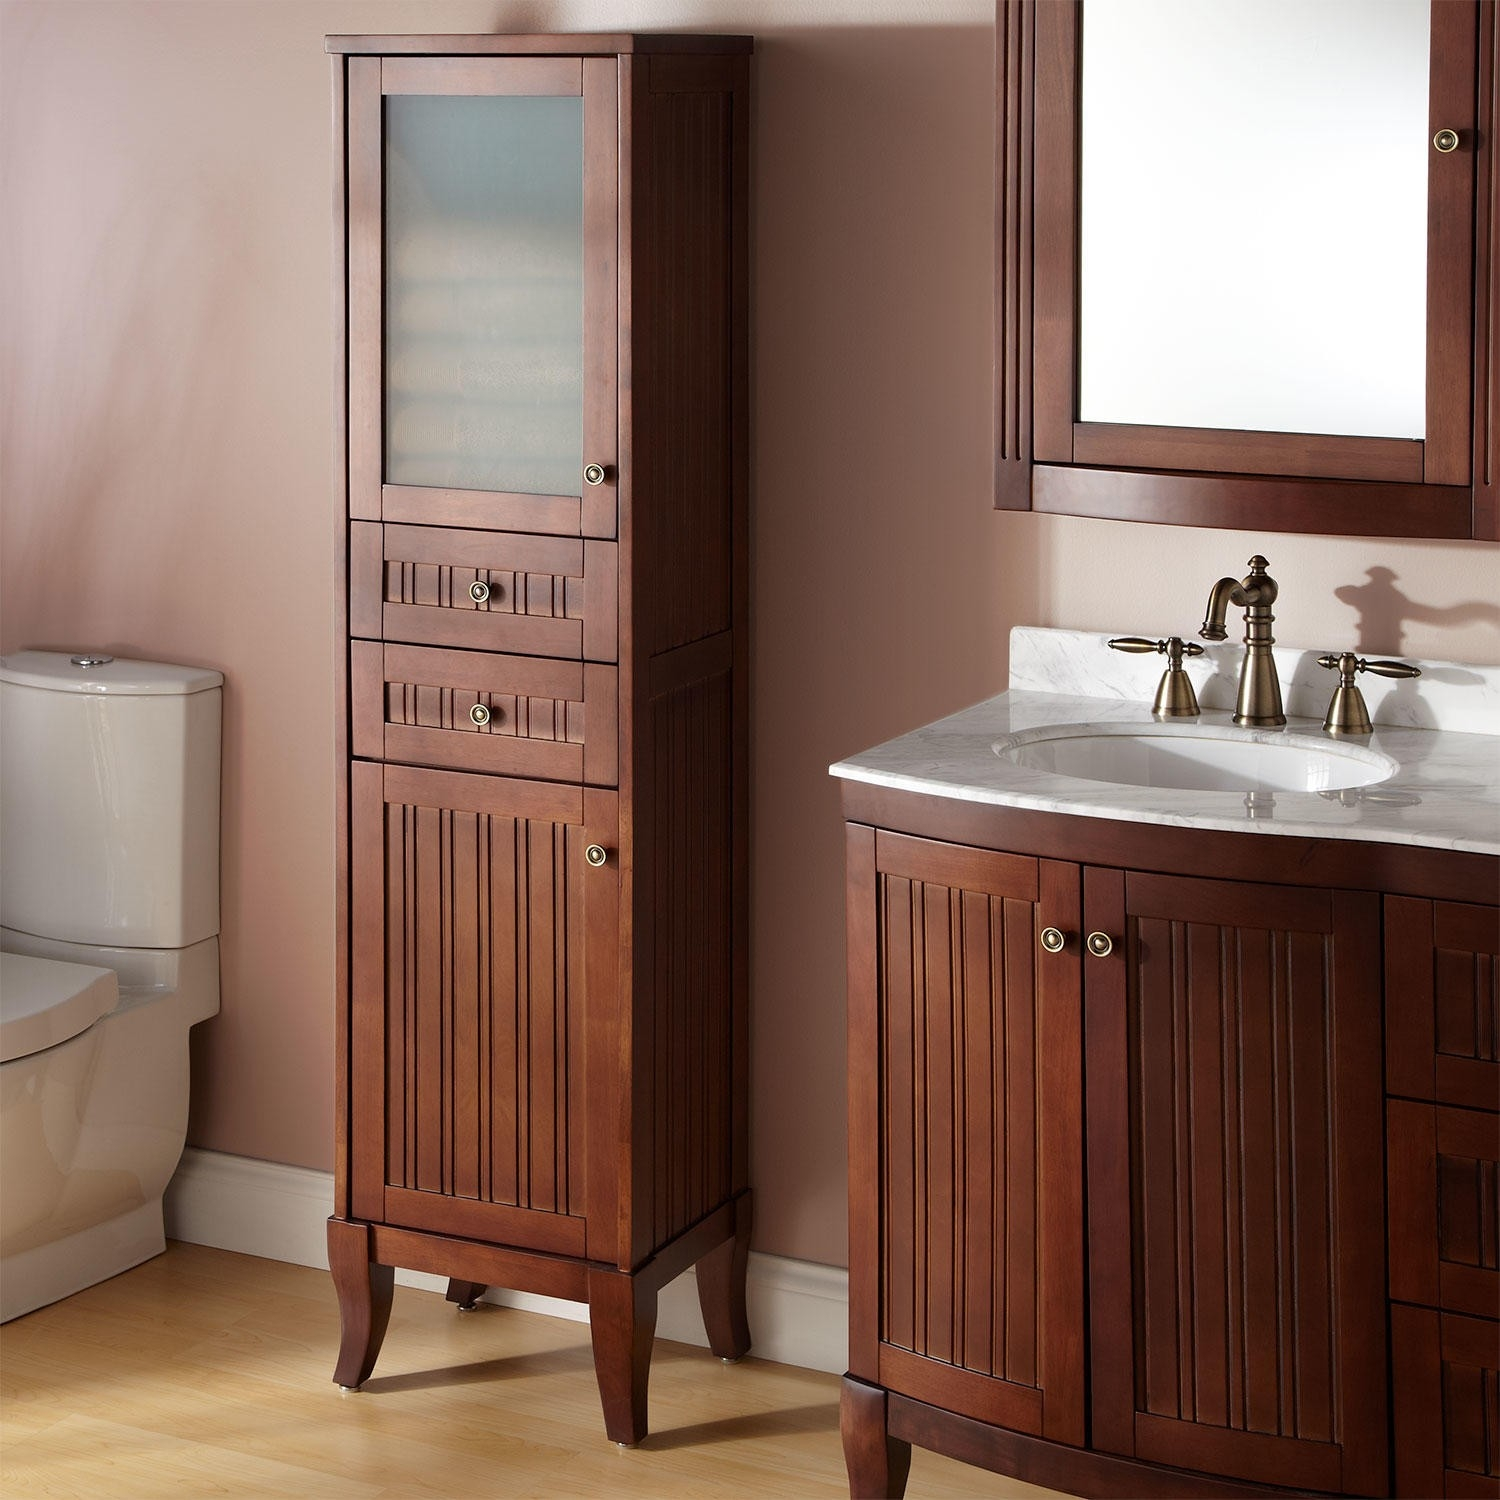 Shallow Storage Cabinet For Bathroom